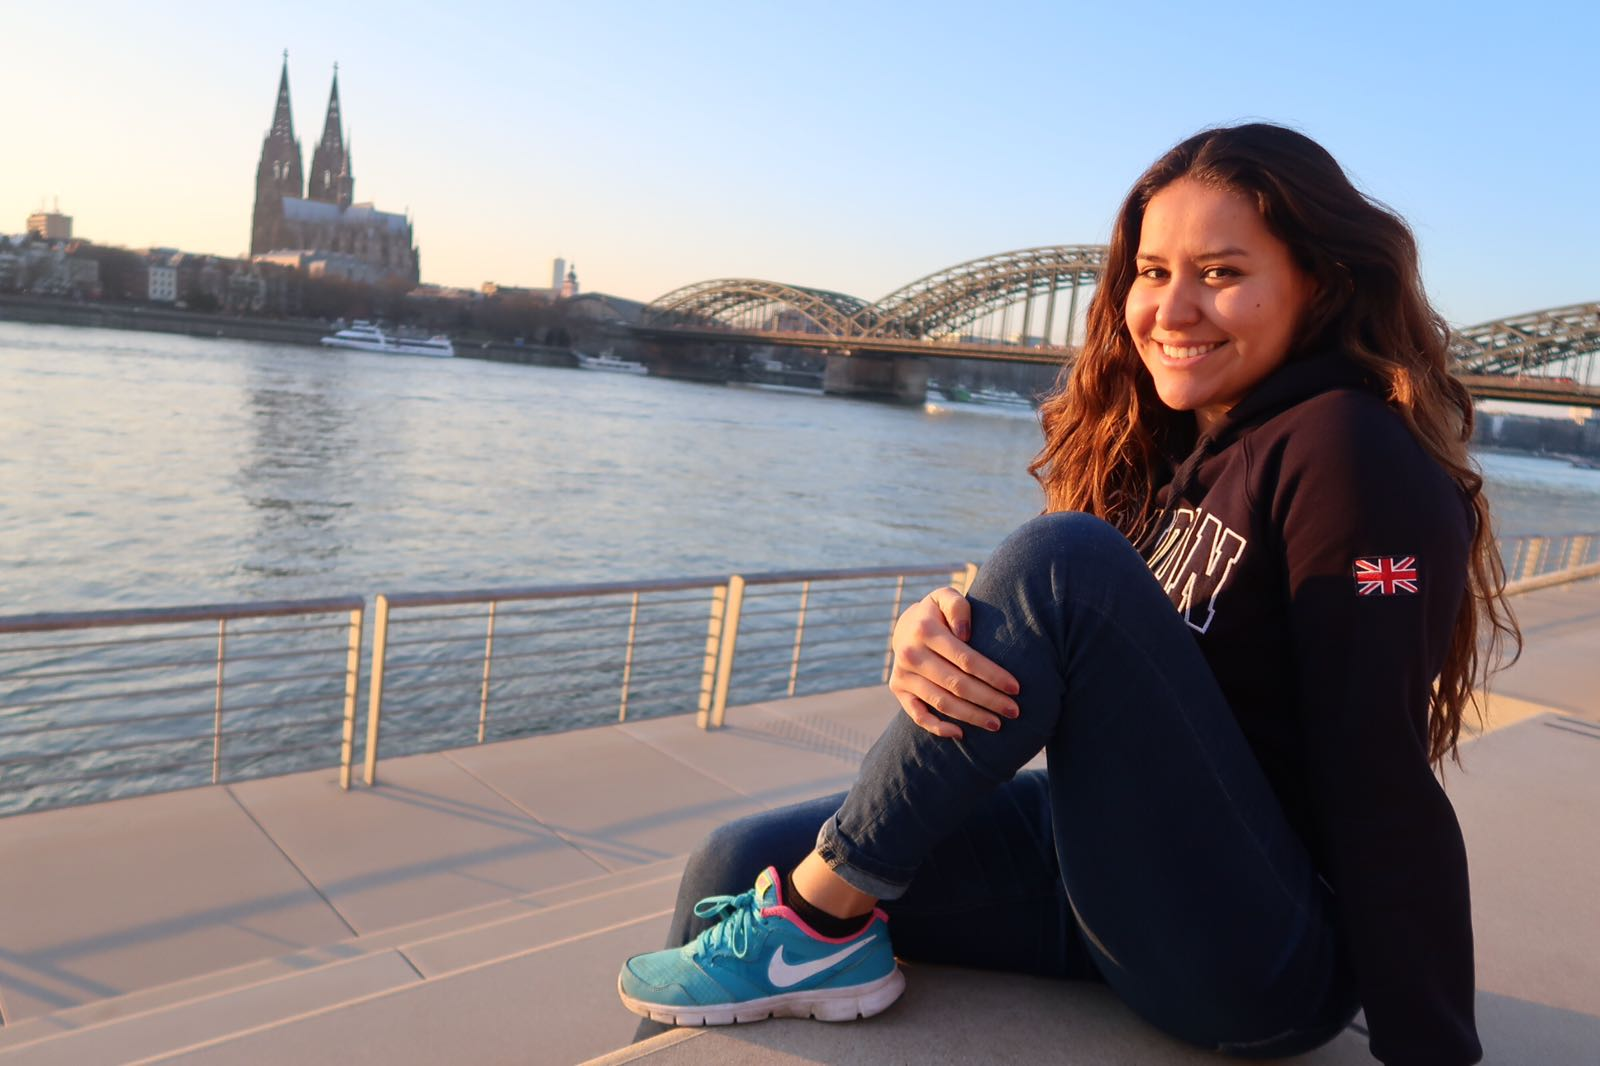 Jaquelin Alonso at the river rhine with the cologne cathedral and hohenzollern bridge in the background.